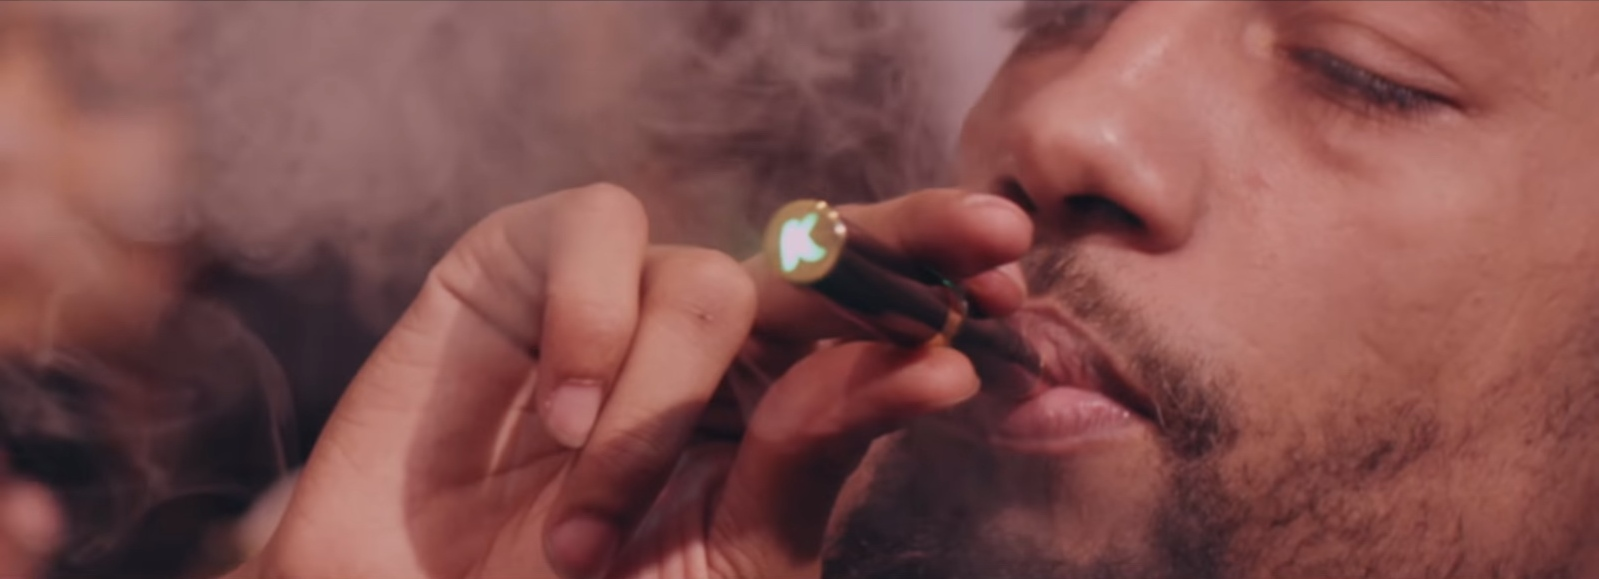 KandyPens - YFN Lucci - Everyday We Lit Official Music Video Product Placement